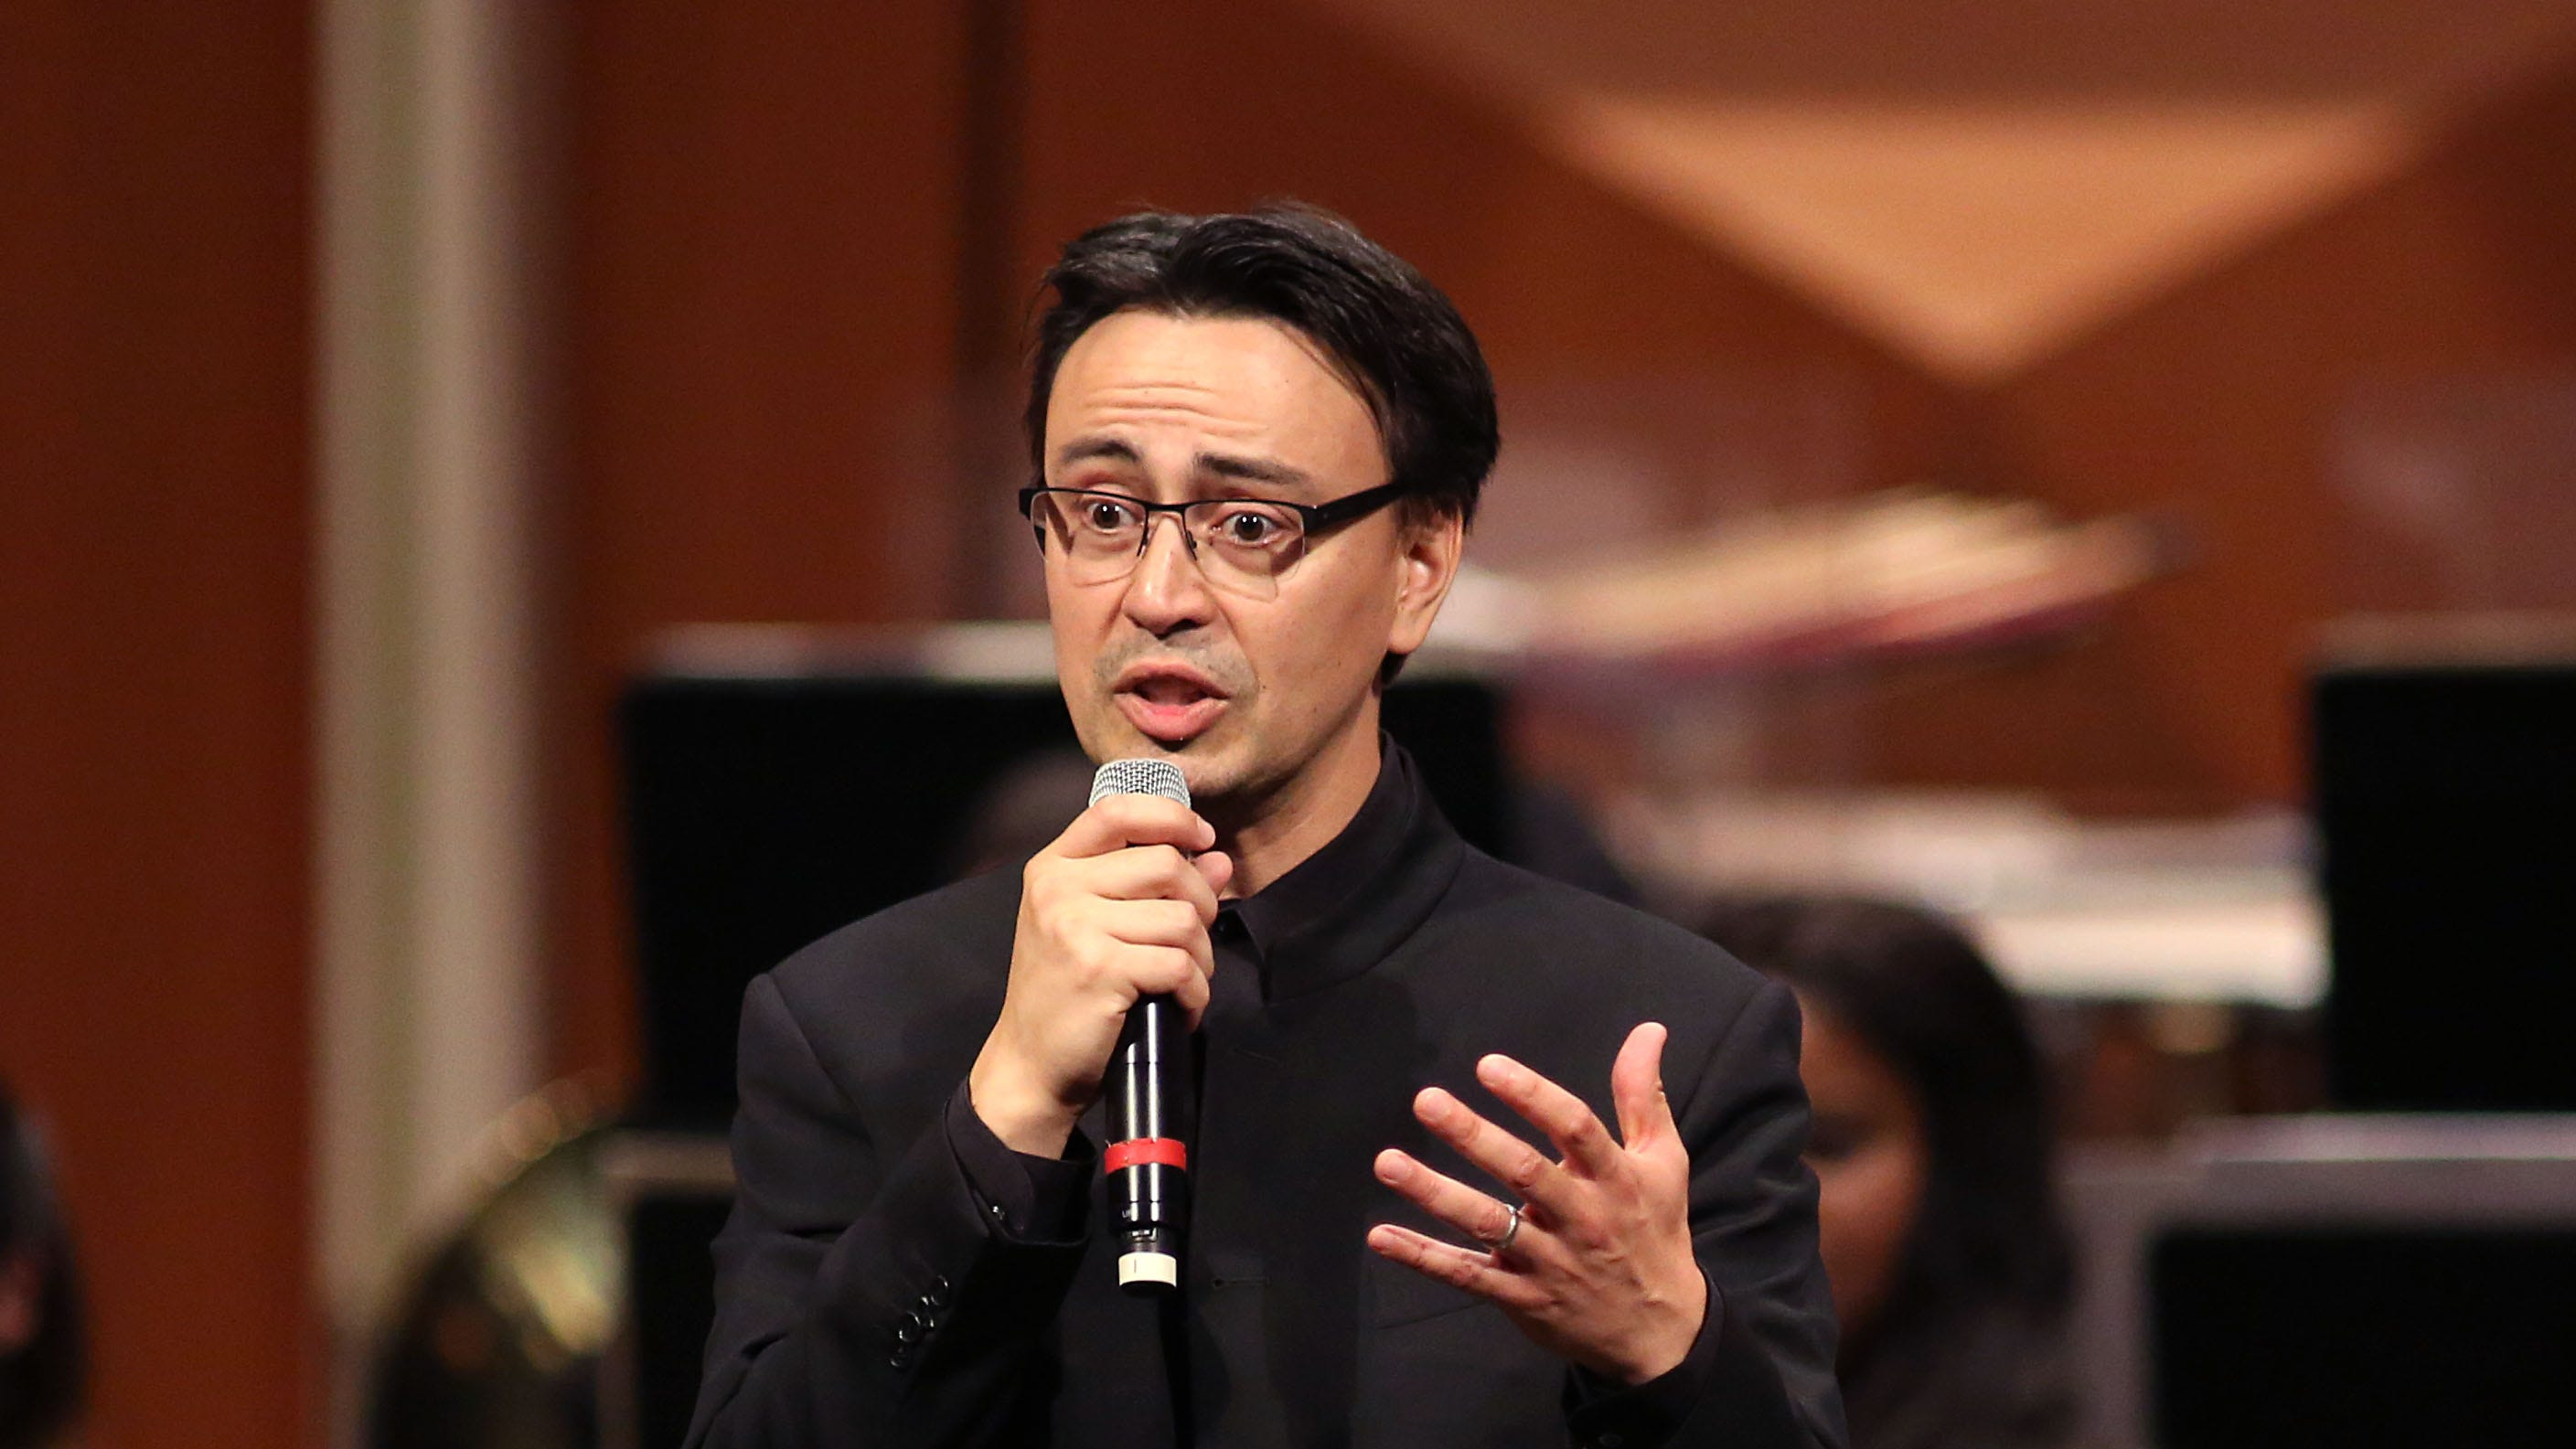 www.jsonline.com: Milwaukee Symphony leader Ken-David Masur says it's time for Asian Americans to stop putting their heads down and enduring discrimination